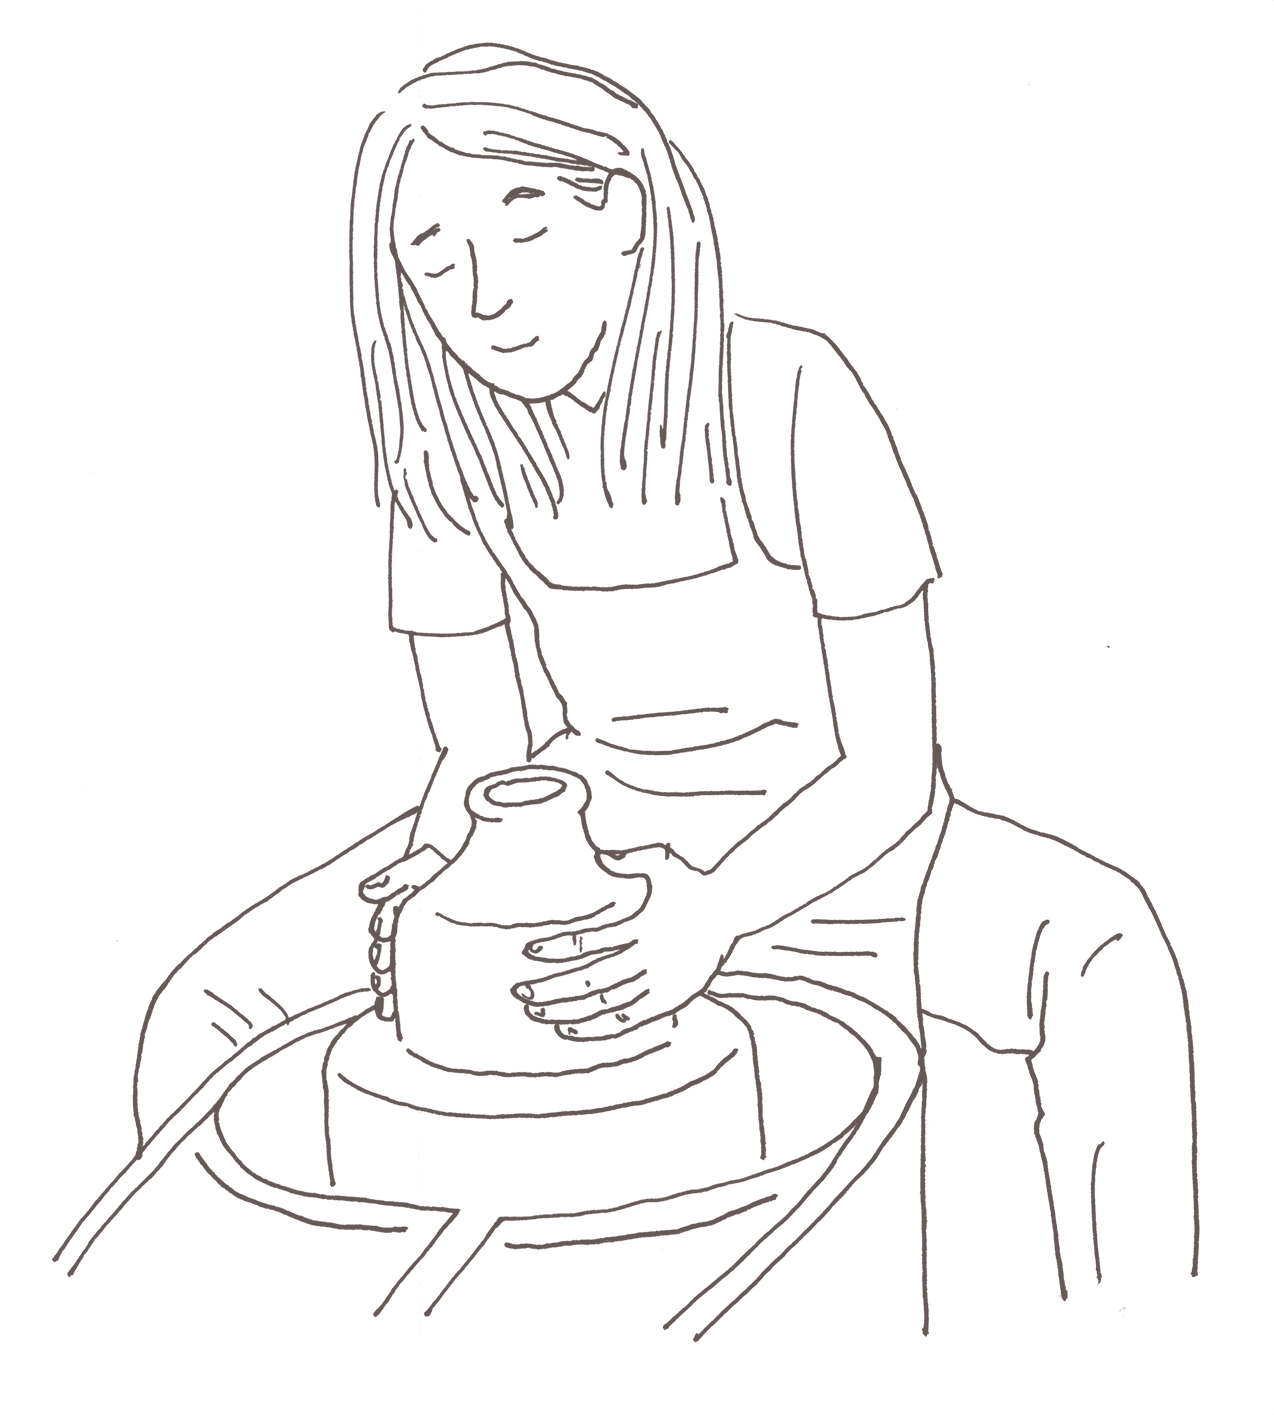 woman doing pottery in sketch